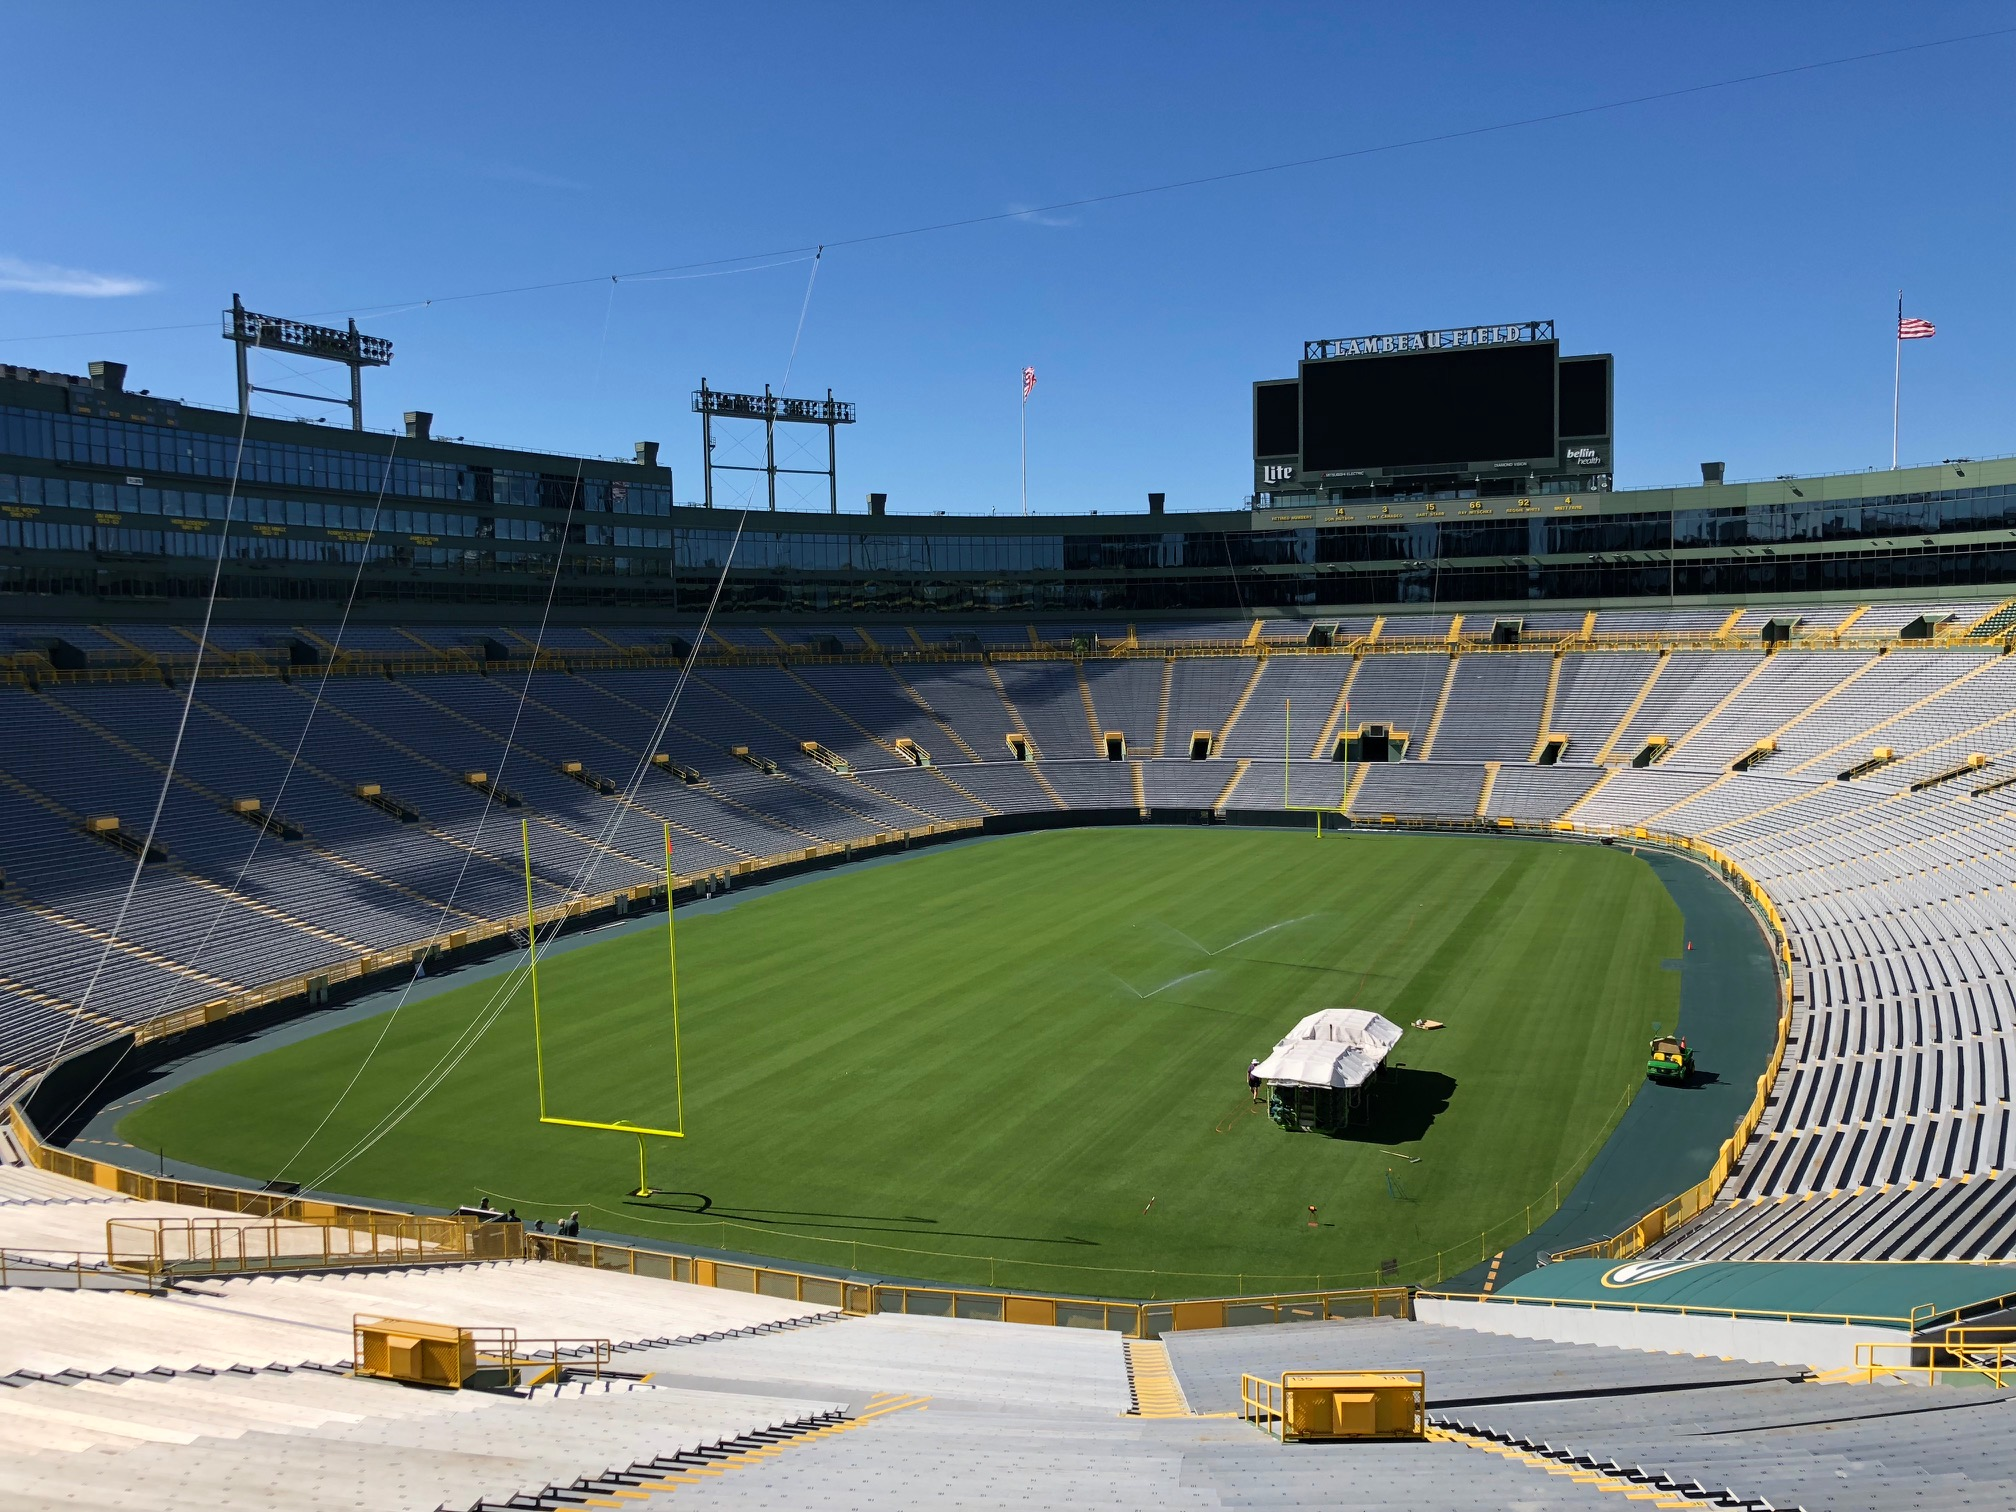 Touchdown With The Latest Sisgrass Technology At Green Bay Packers Sis Pitches